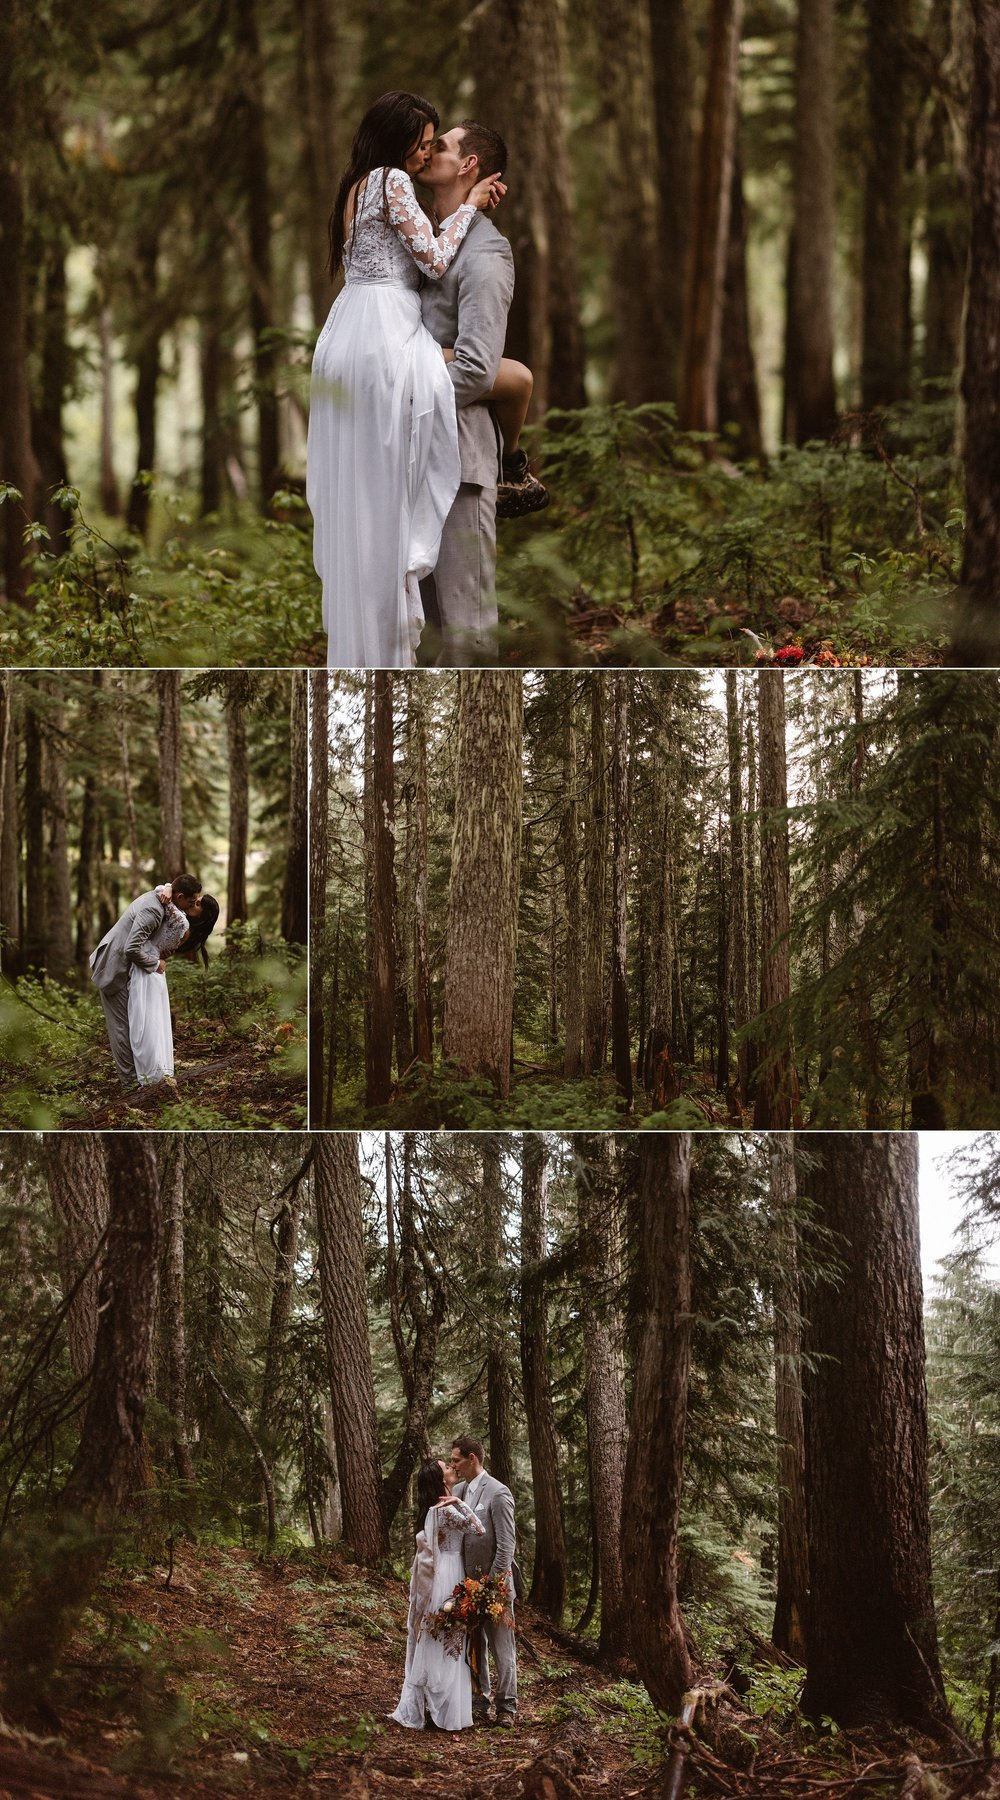 The mist rolled in and out, their wedding clothes showing signs of their adventurous elopement hike. This stunning couple went all out for romance and eloped in Mount Rainier National Park with only their closest friends and their intimate elopement photographer Maddie Mae.